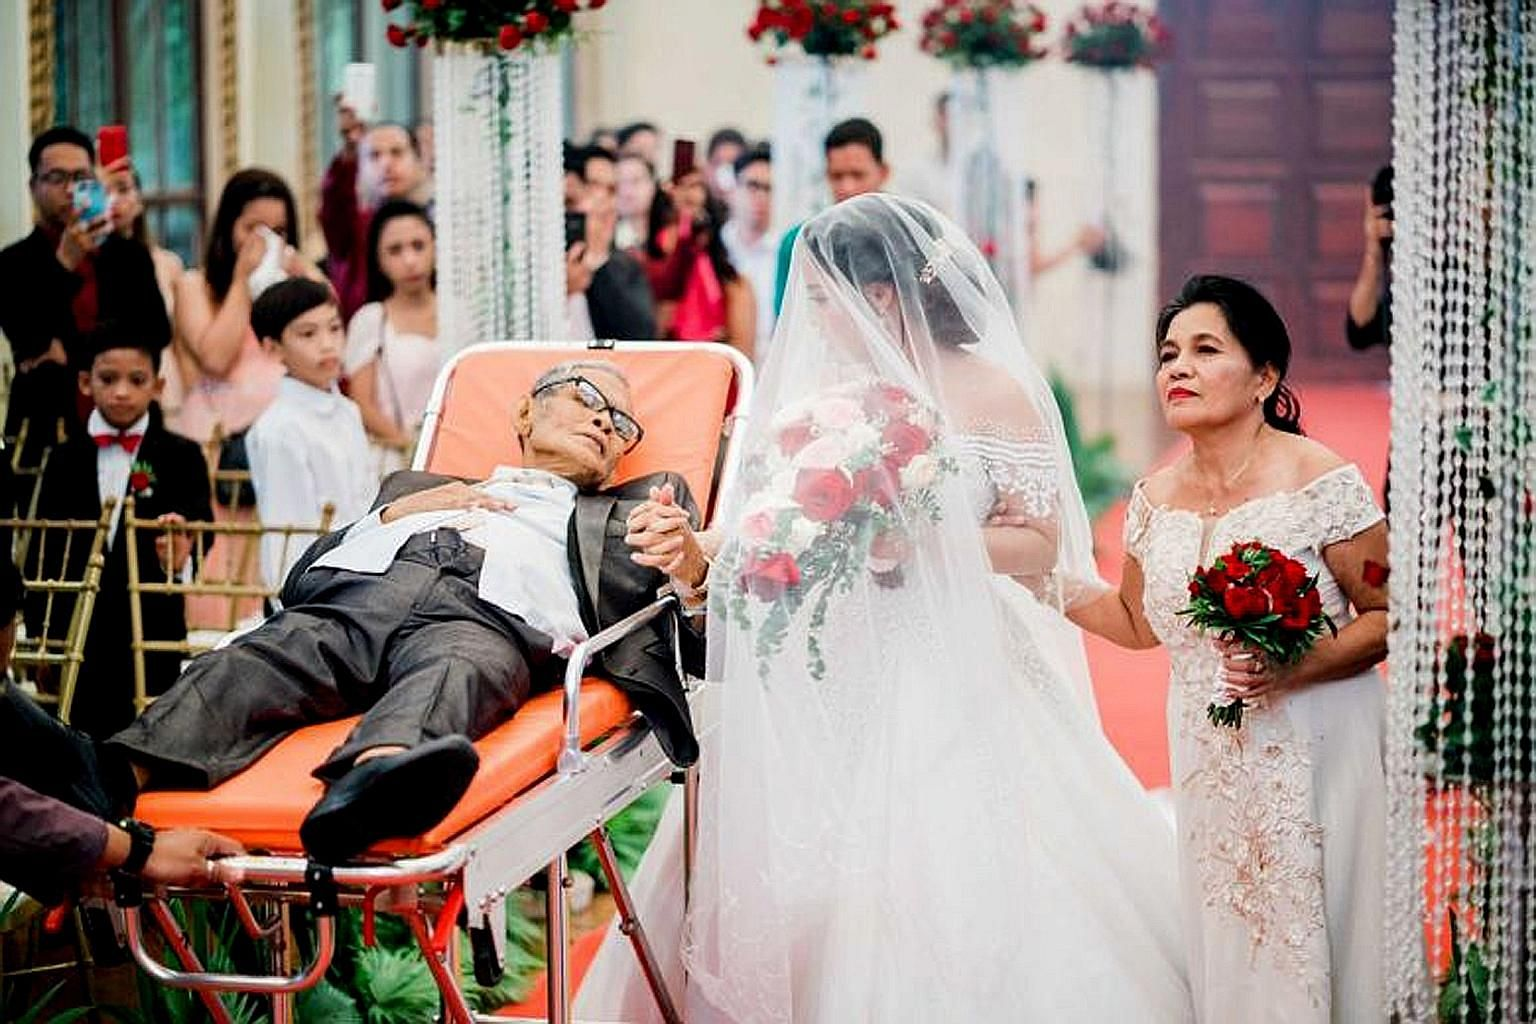 Ms Charlotte Gay Villarin has her fingers laced around those of her father - Mr Pedro Villarin - who, despite being weak, looks lovingly at his daughter from a stretcher, which is being pulled down the aisle. On the right is the bride's mother.